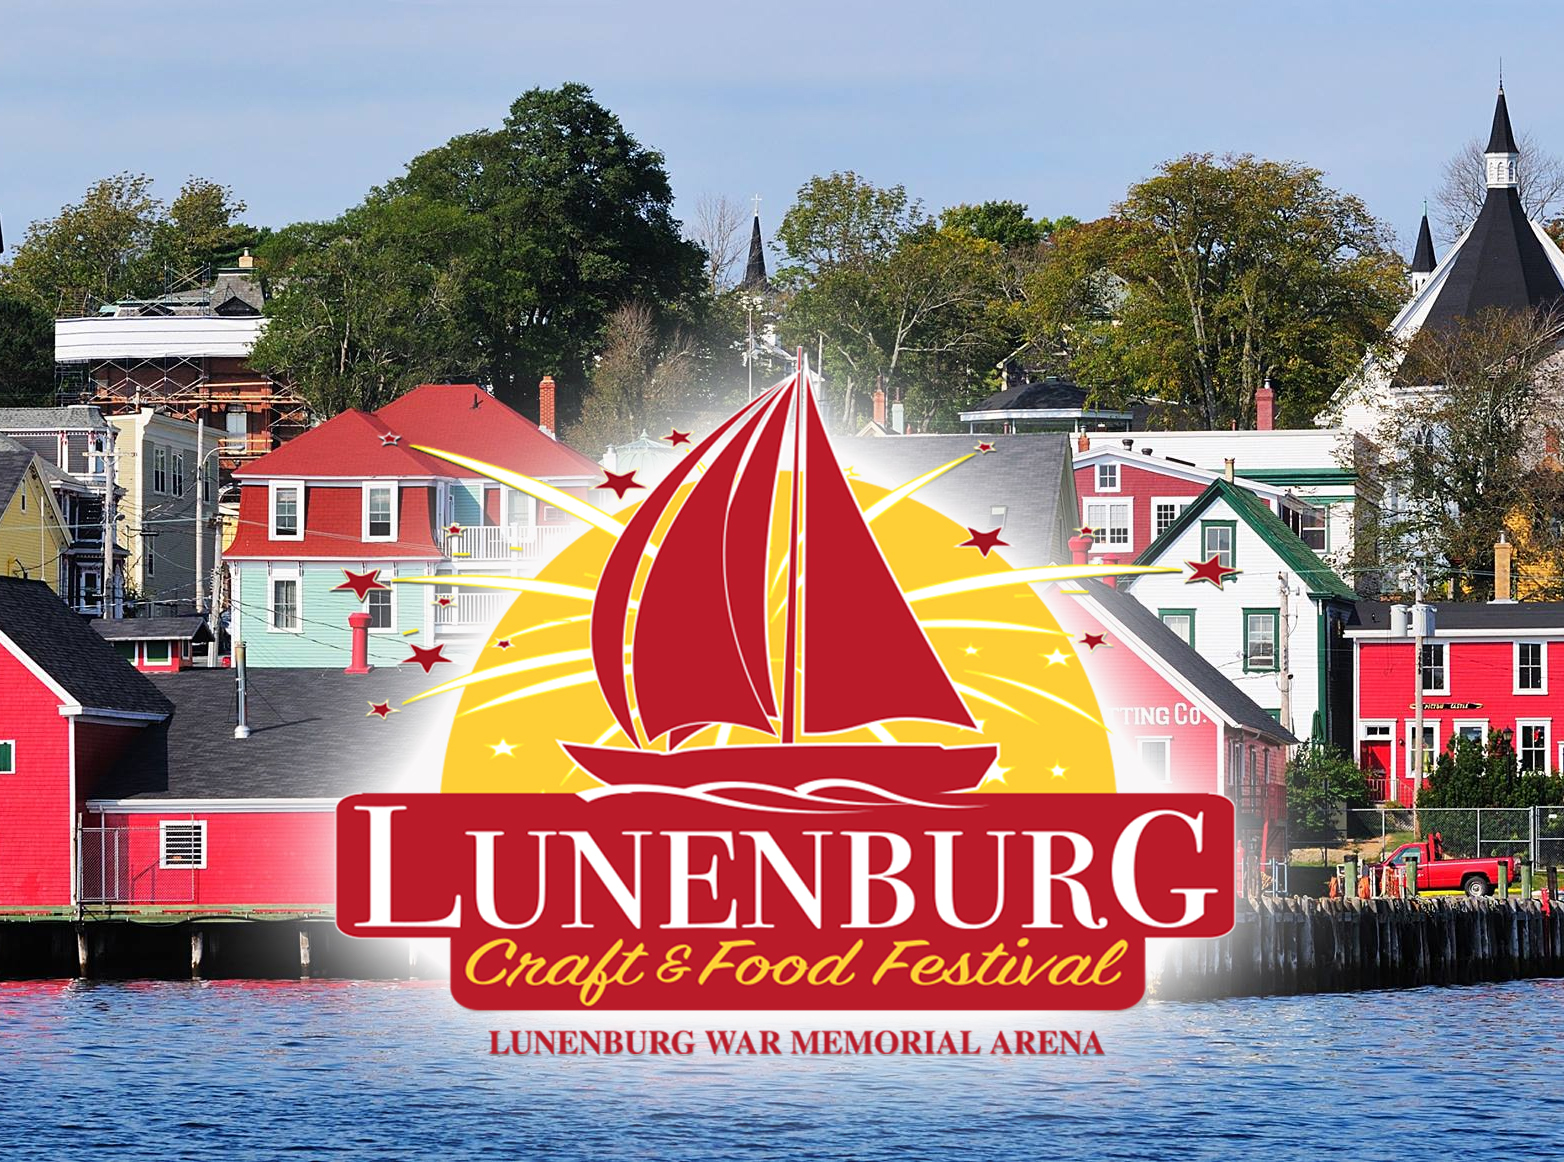 The 44th Annual Lunenburg Craft and Food Festival